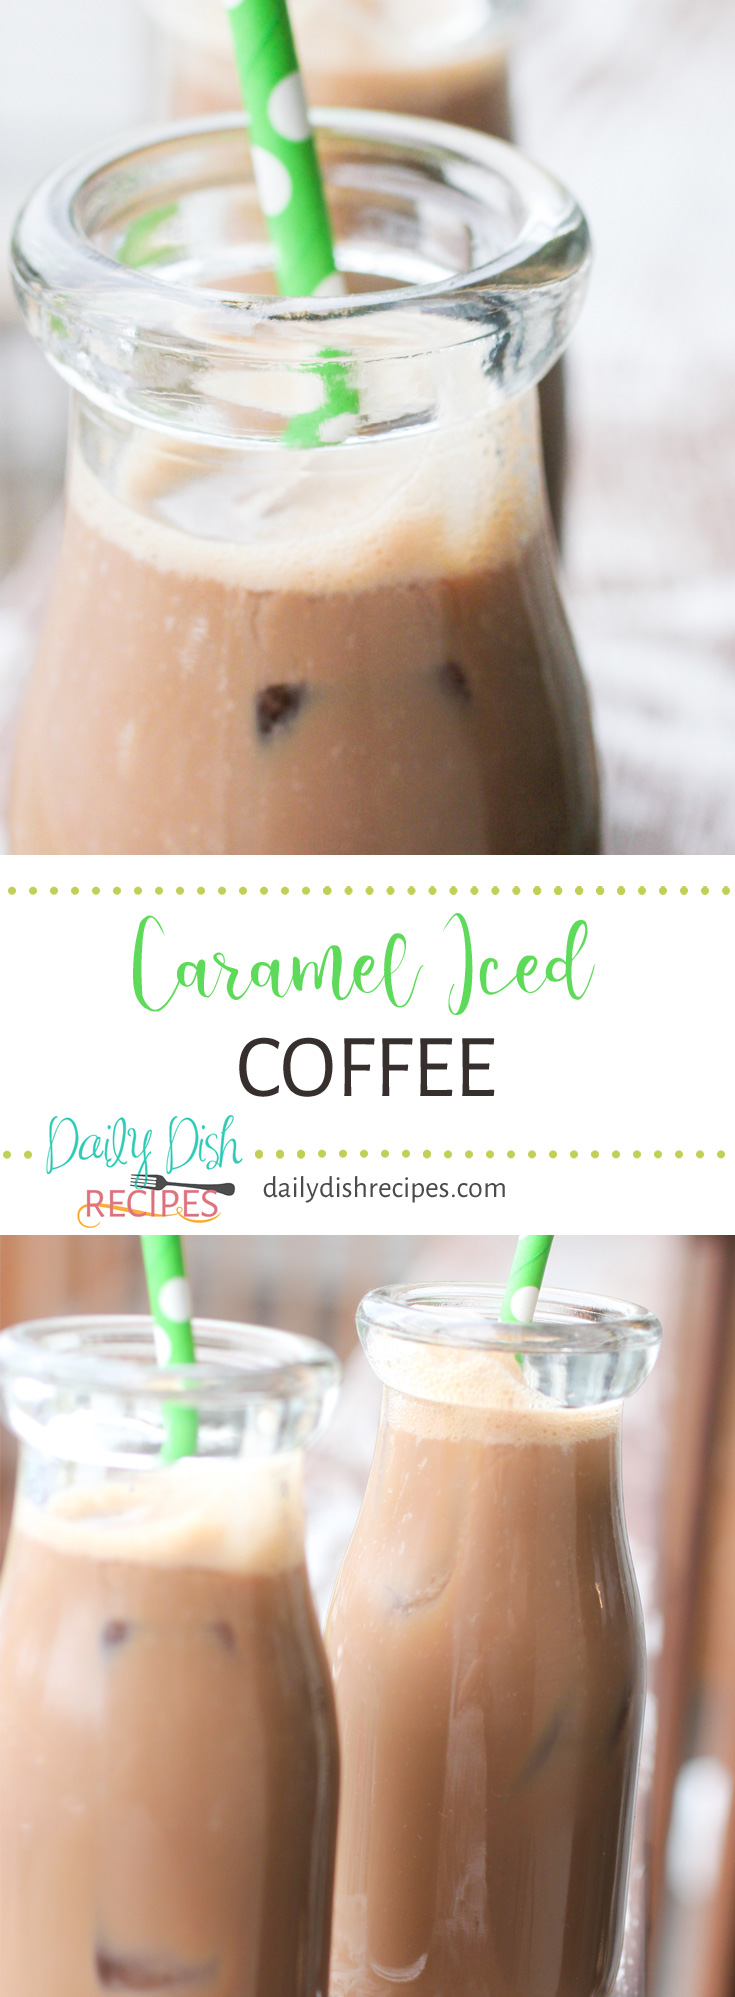 Want your gourmet coffee but don't want to spend alot of cash? This Caramel Iced Coffee is creamy, cold and delicious - just as good if not better than your local coffee shop & can be made right in your kitchen!